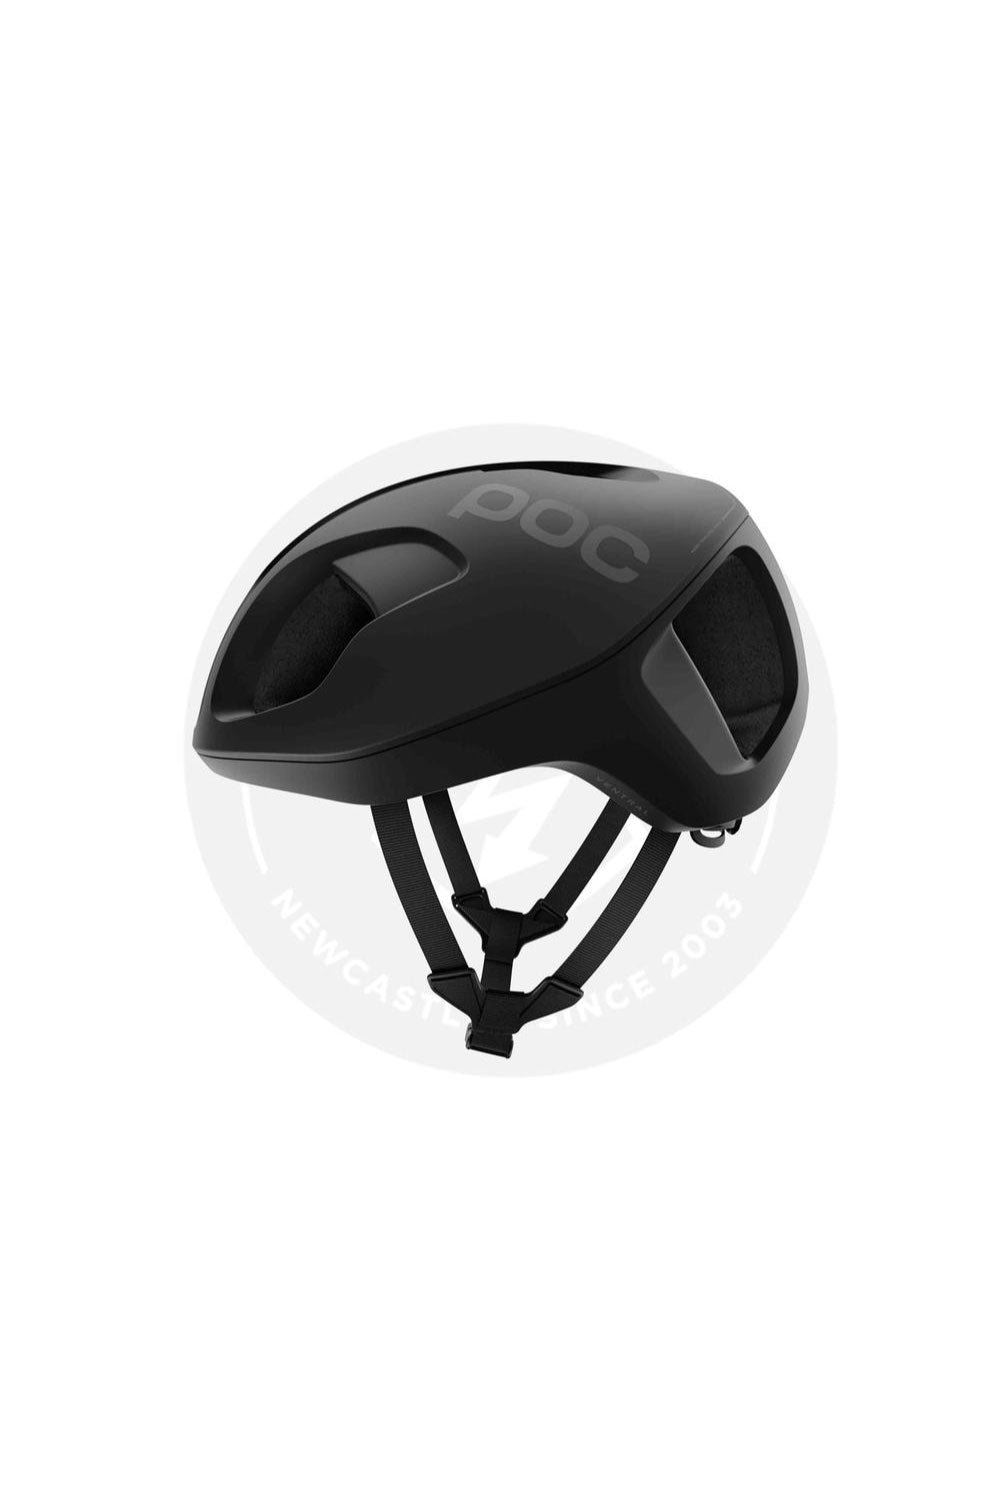 POC Ventral Spin Adult Road Bike Helmet